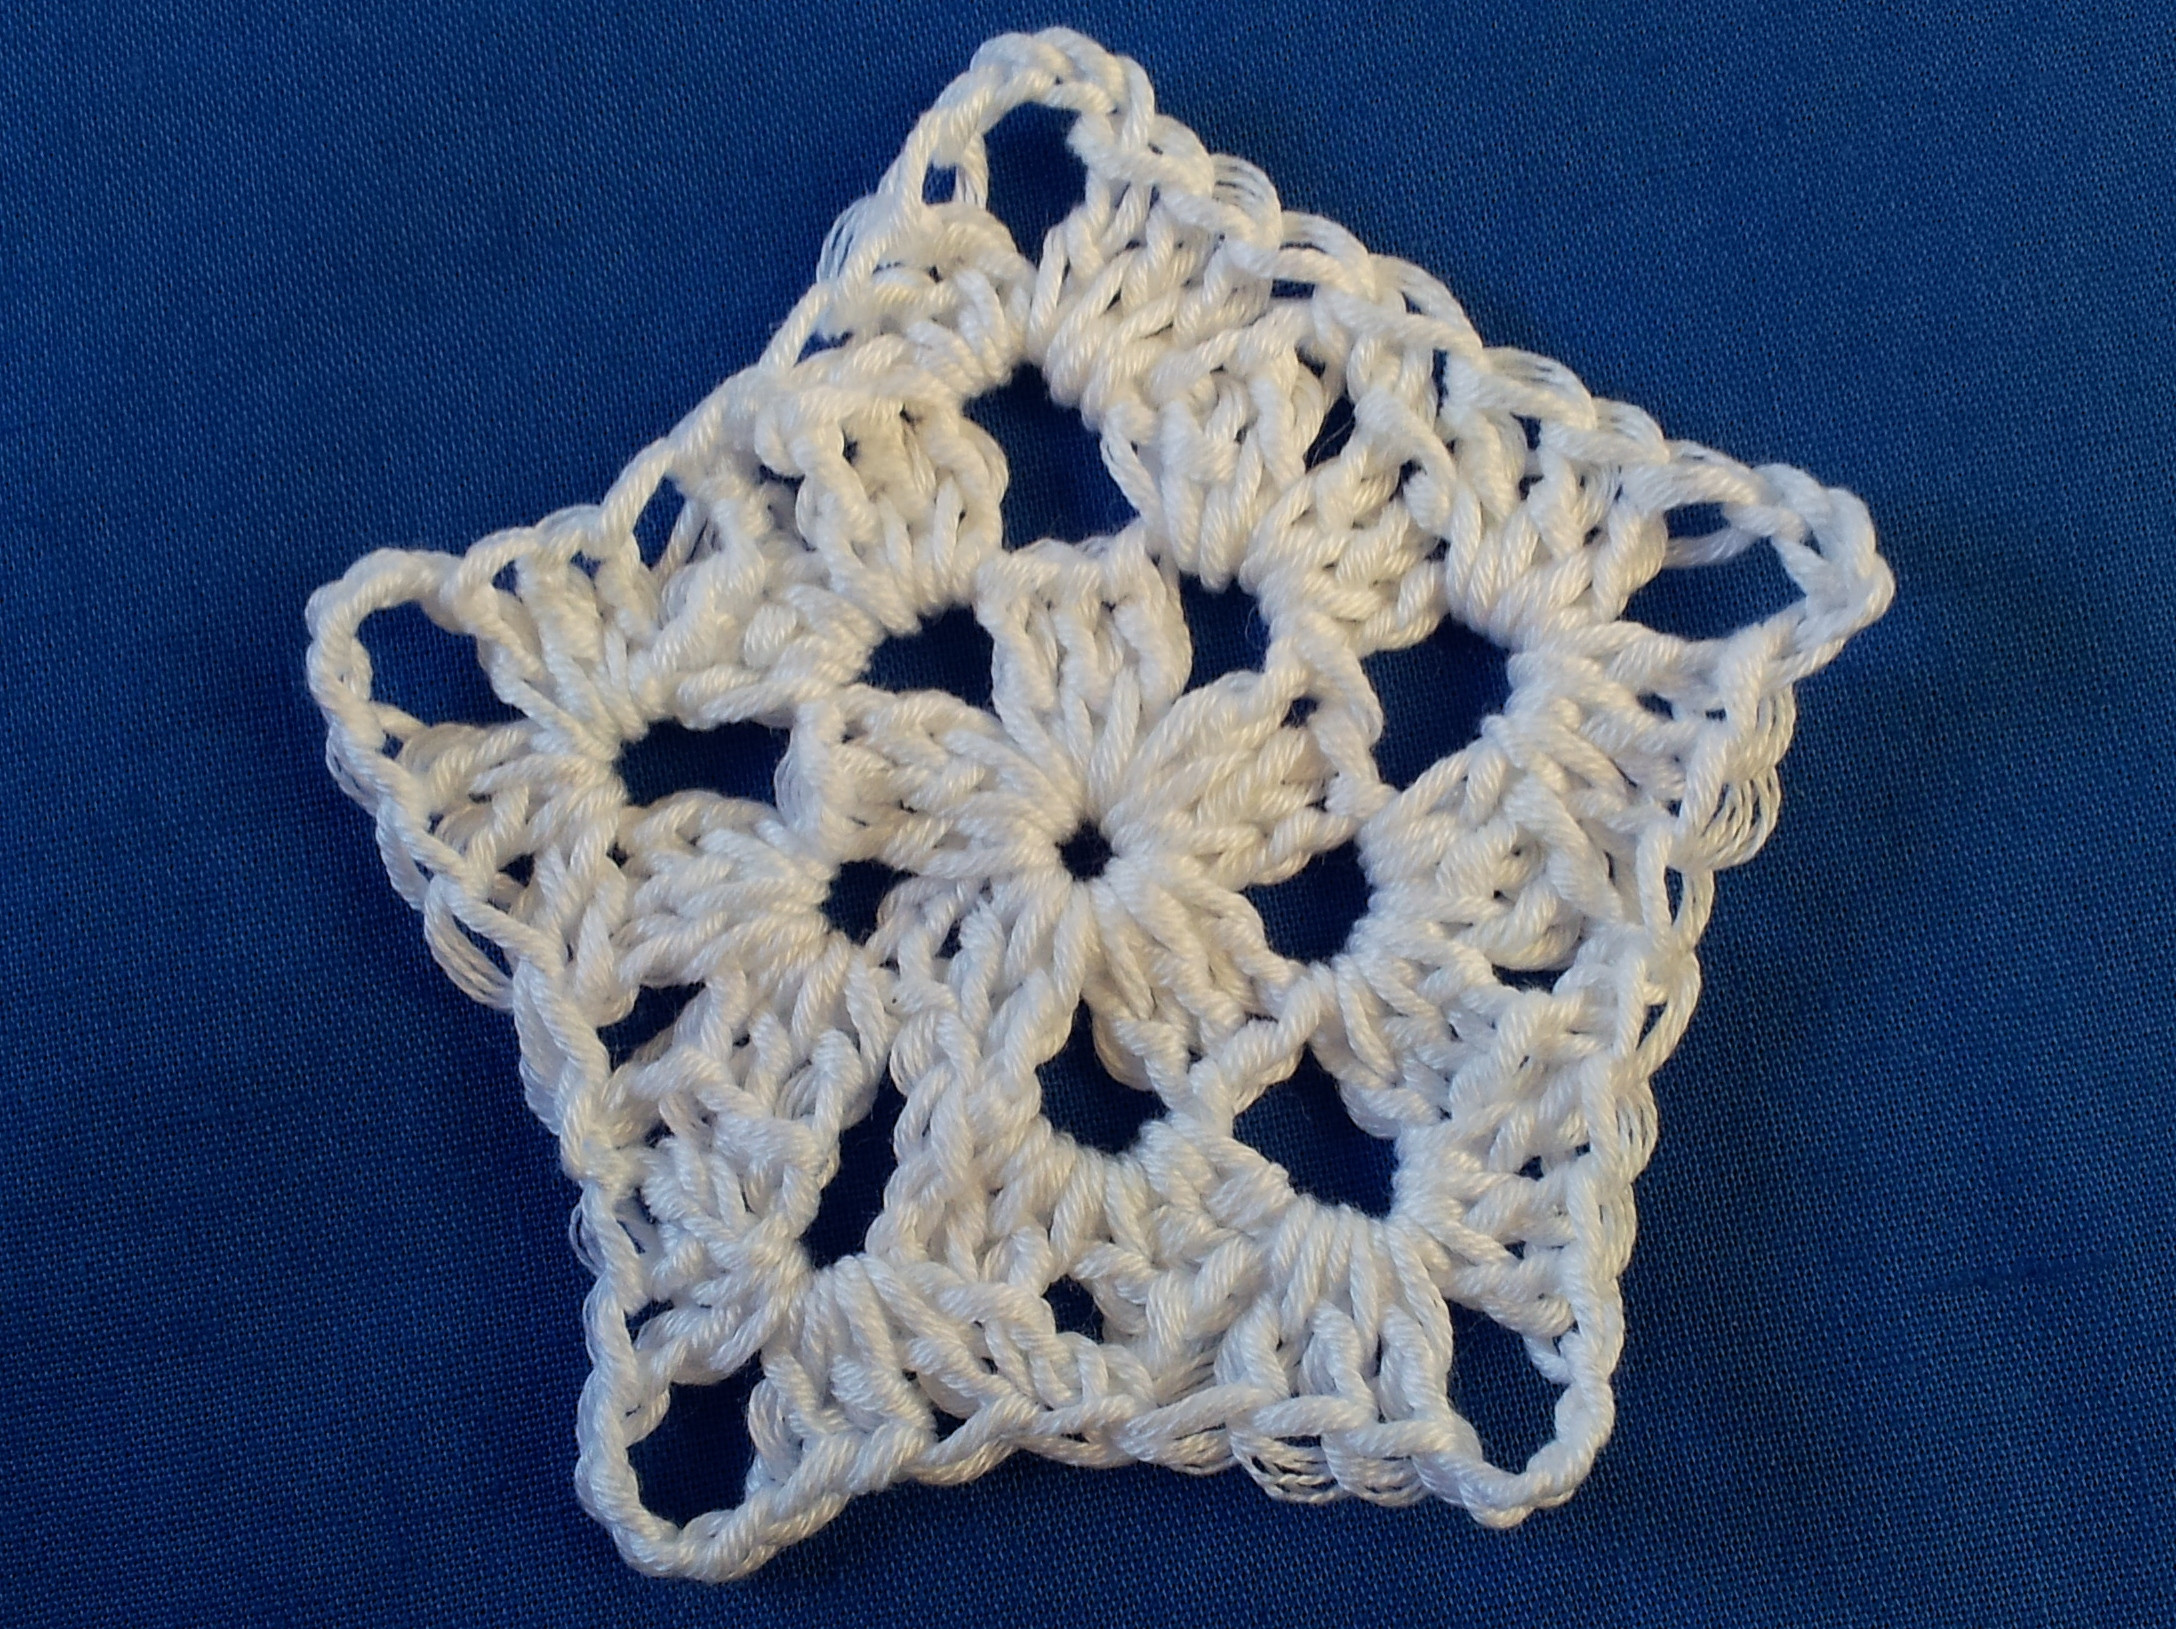 Crochet Snowflake Pattern New 33 Crochet Snowflake Patterns Of Wonderful 50 Photos Crochet Snowflake Pattern